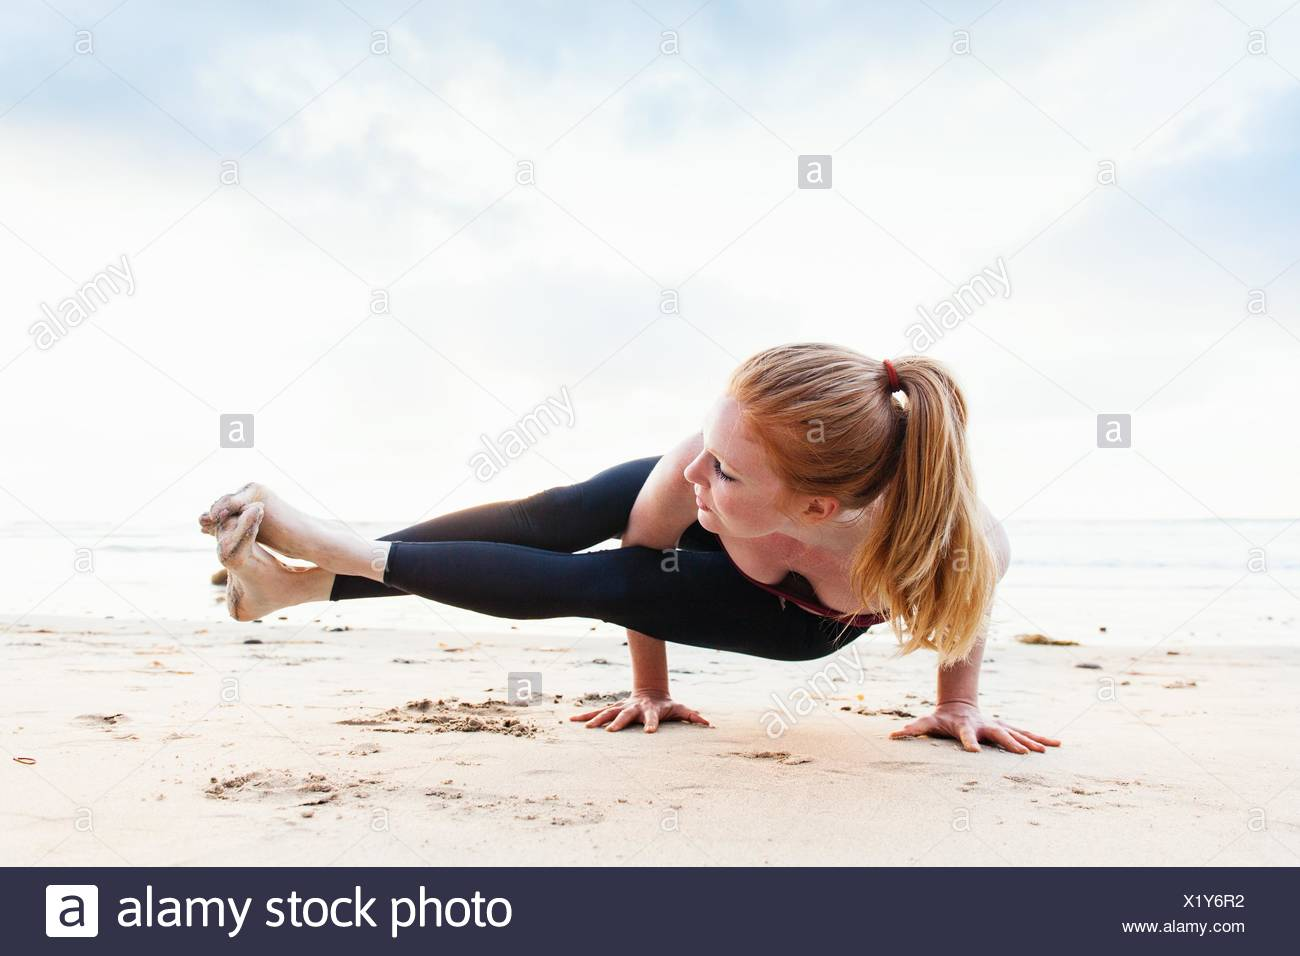 Mid adult woman poised in yoga position on beach - Stock Image